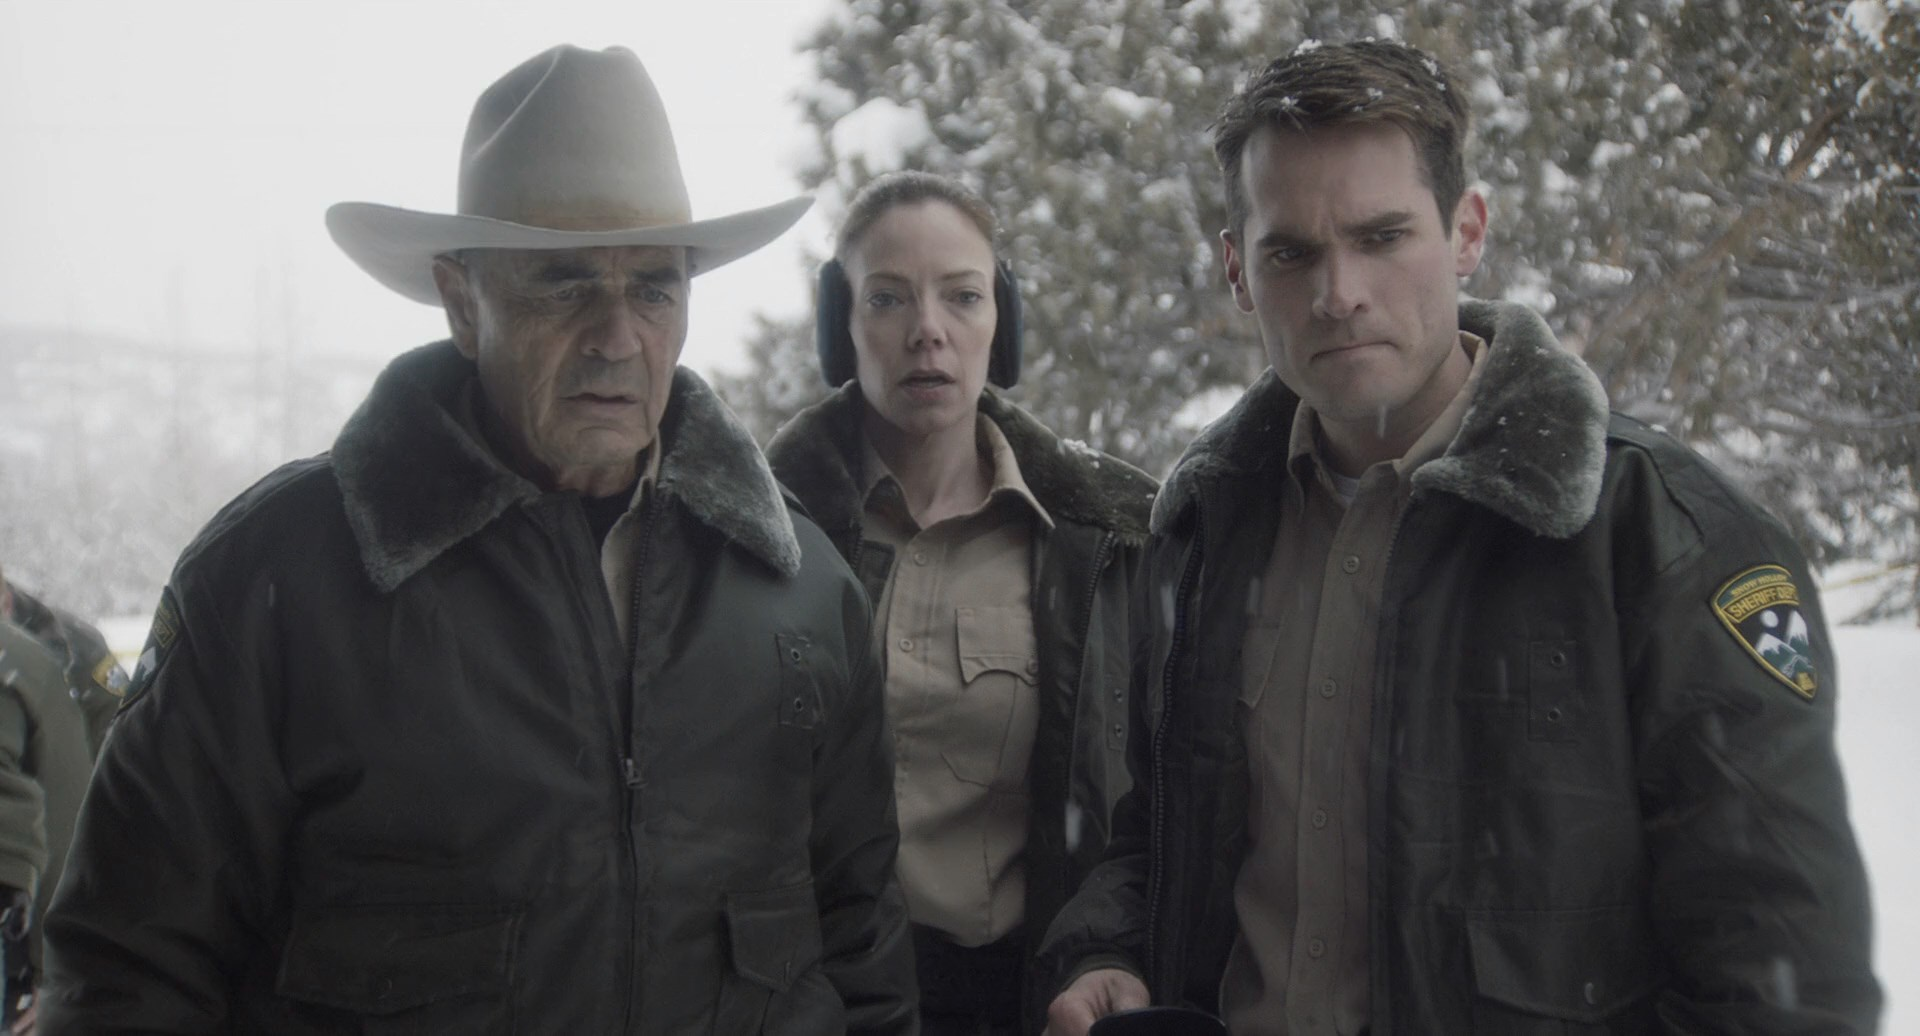 Robert Forster, Riki Lindhome and Jim Cummings in The Wolf of Snow Hollow (2020) 1